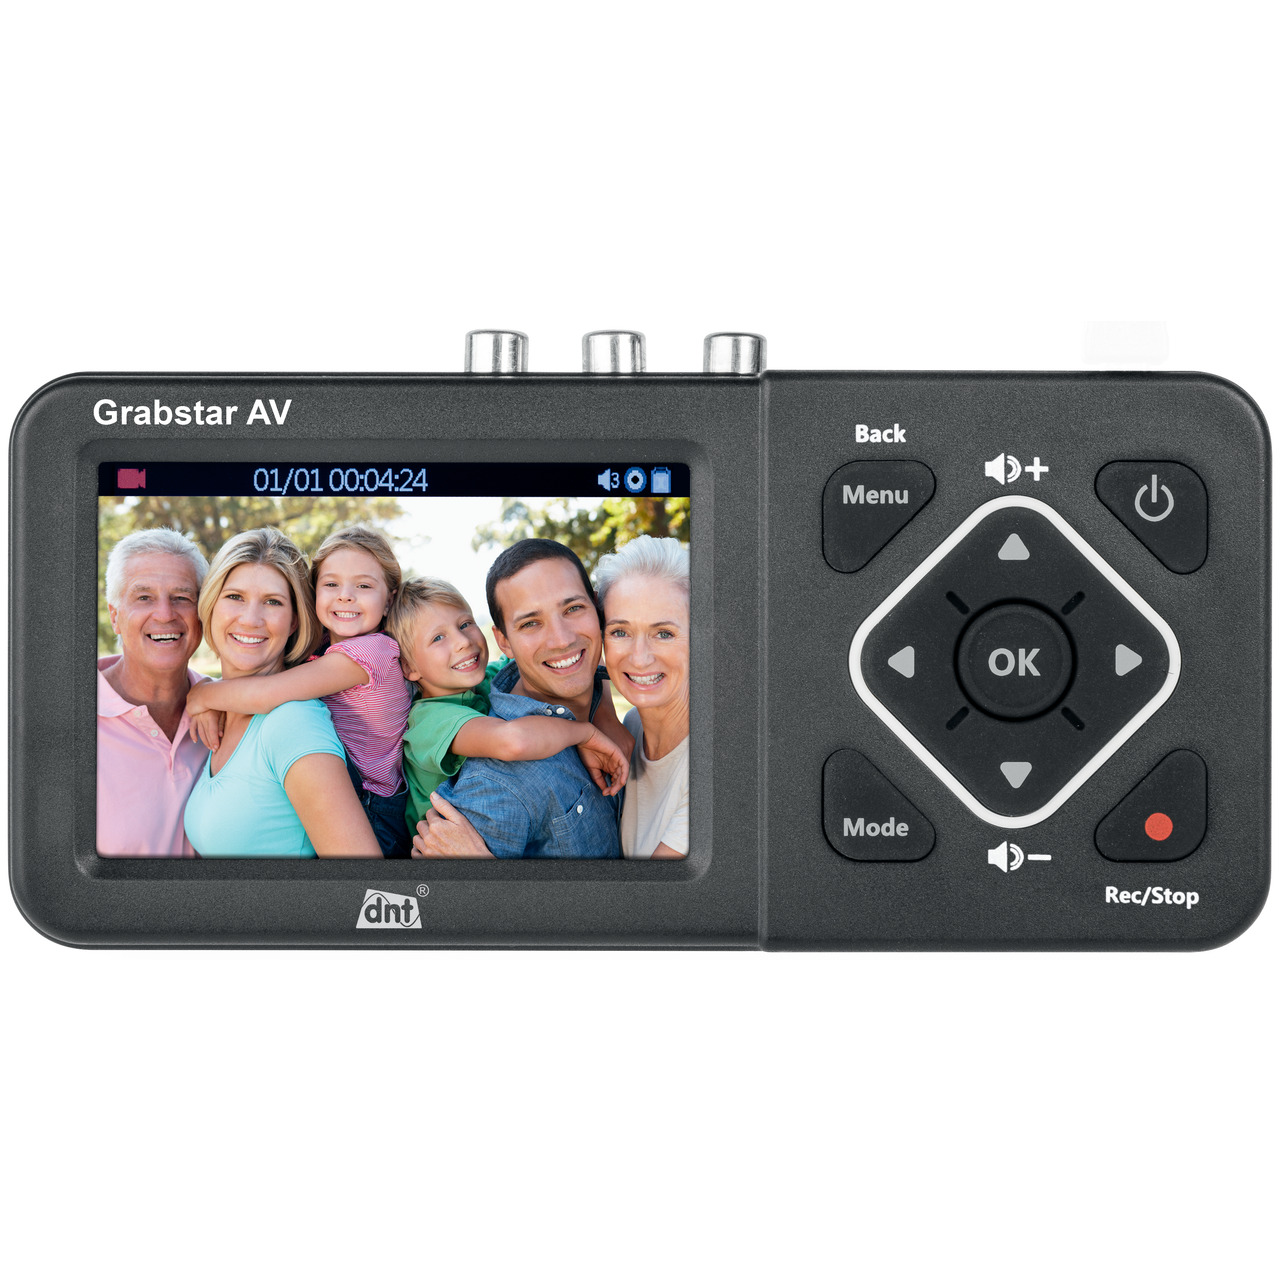 dnt Video-Digitalisierer Grabstar AV- 8-9-cm-LC-Display (3-5)- S-Video- speichert auf USB-SD-Medien